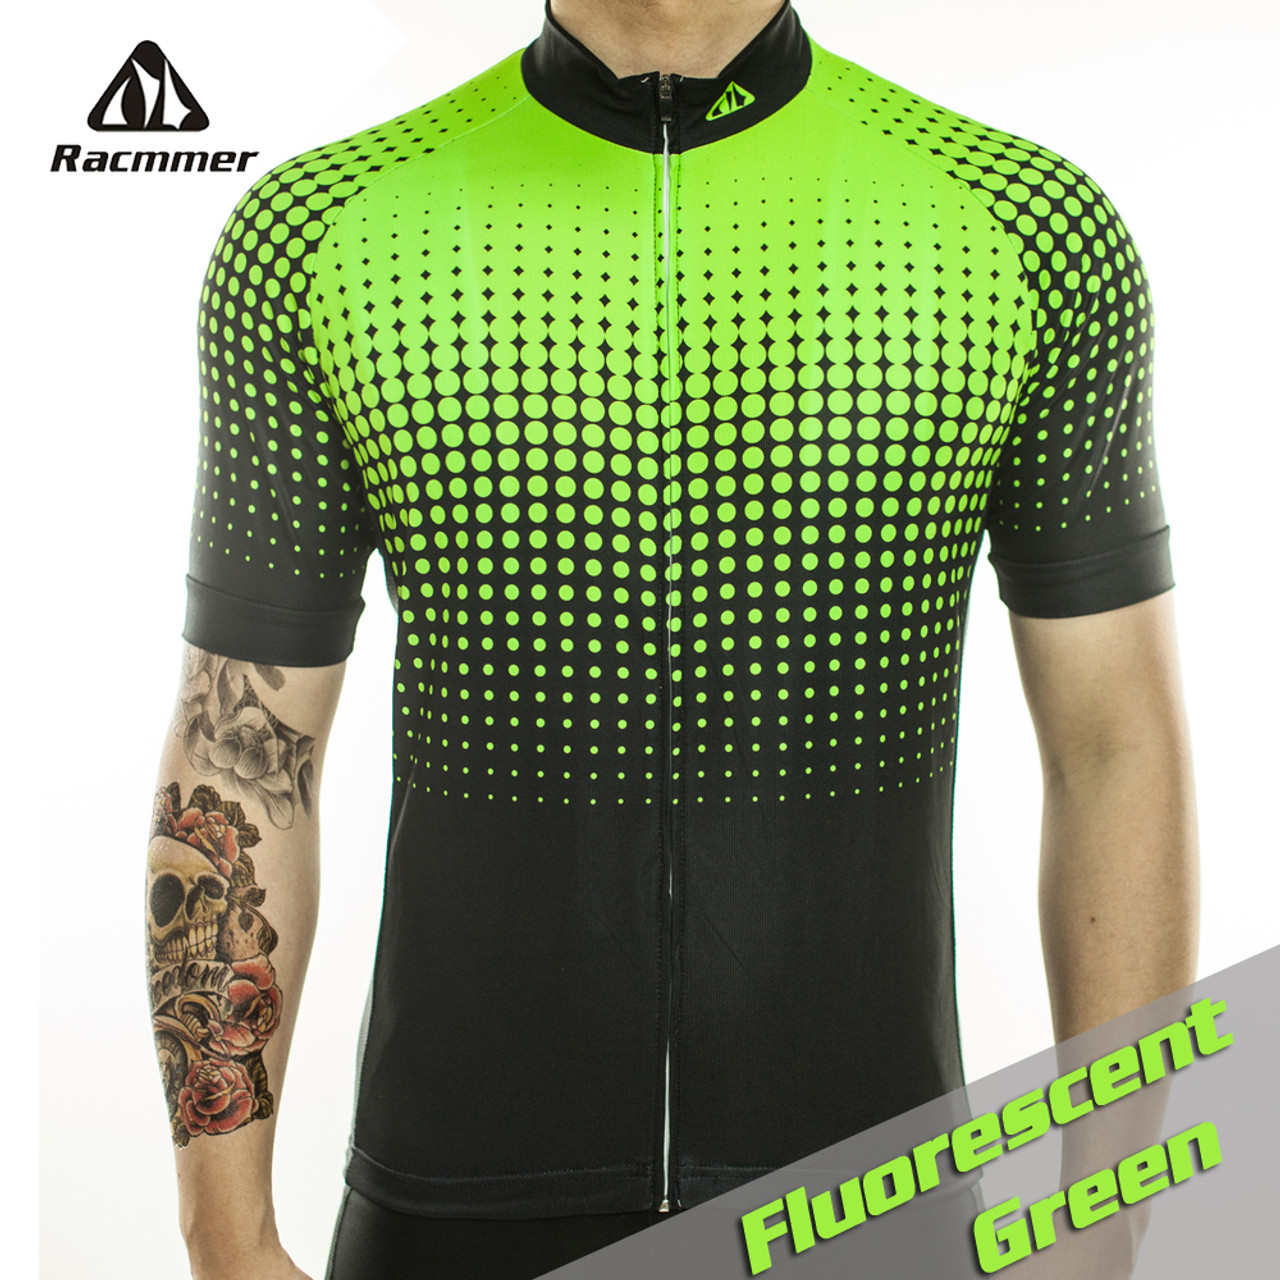 44600fa794b3 Racmmer 2018 Cycling Jersey Mtb Bicycle Clothing Skinsuit Clothes Bike  Short Maillot Roupa Ropa De Ciclismo Hombre Verano #DX-09